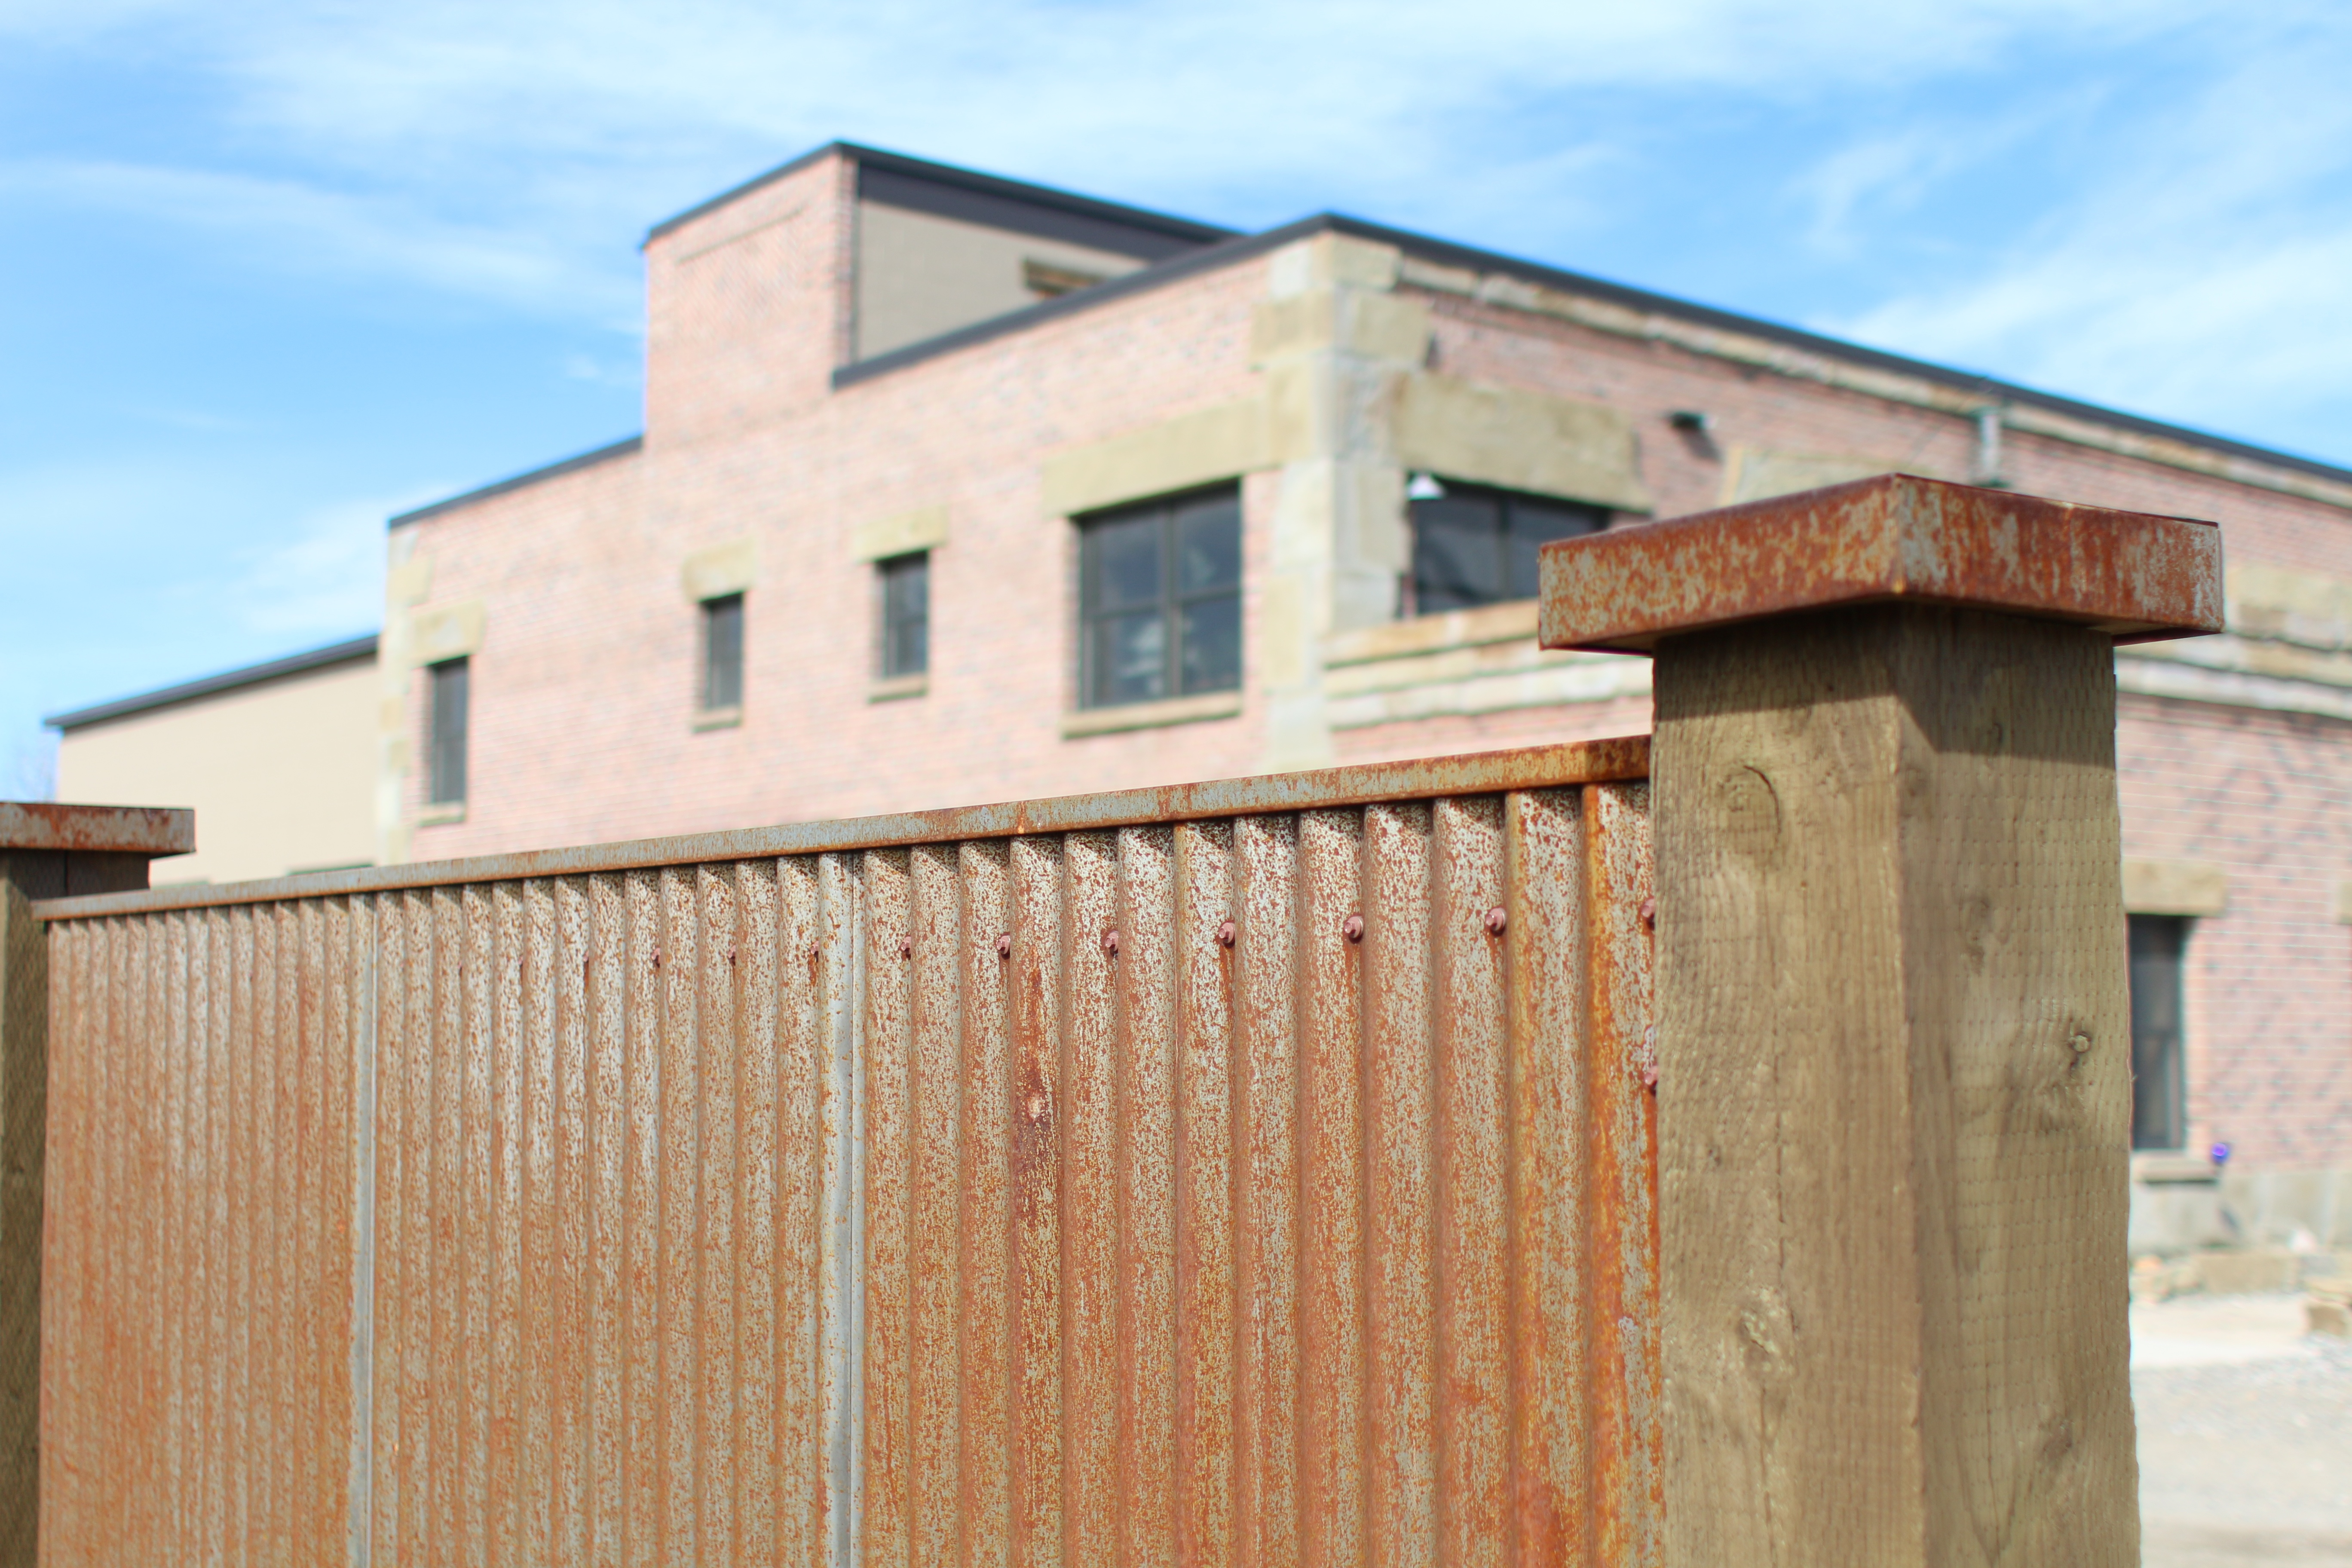 corrugated metal fence panels. Rusted Corrugated Fence Metal Panels